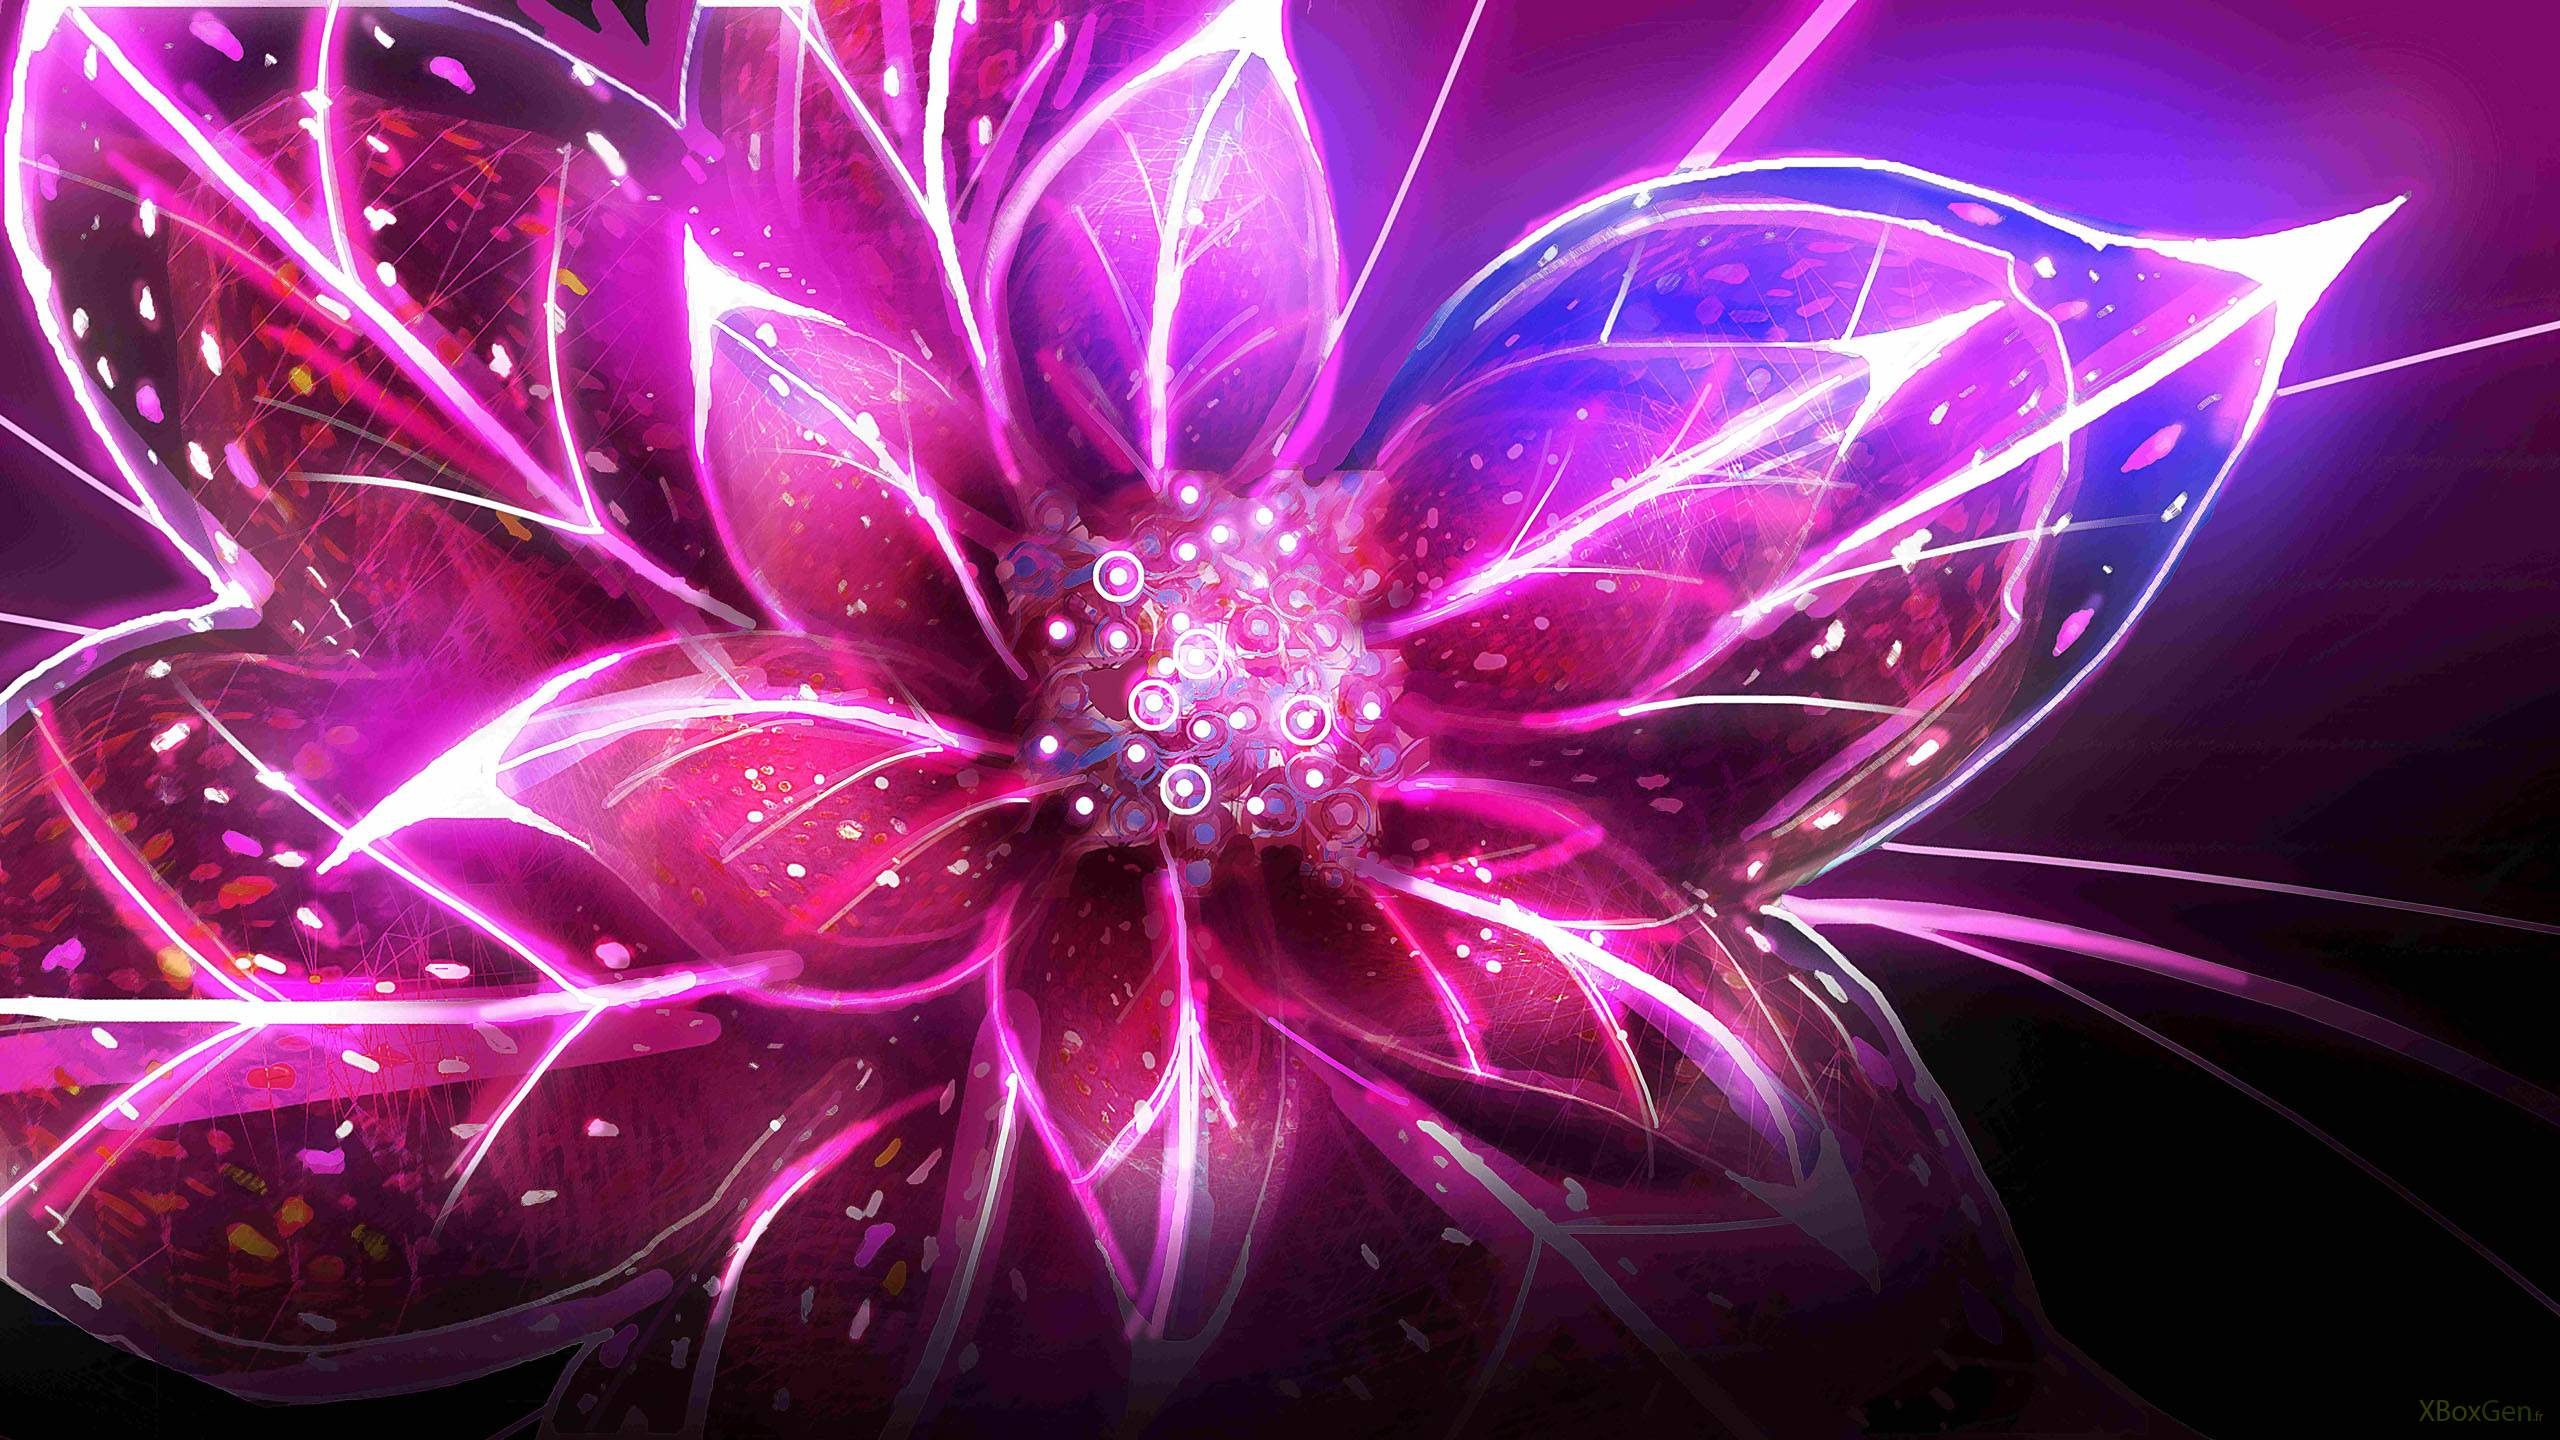 Abstract Flowers Wallpaper 2560x1440 Abstract Flowers Digital Art 2560x1440